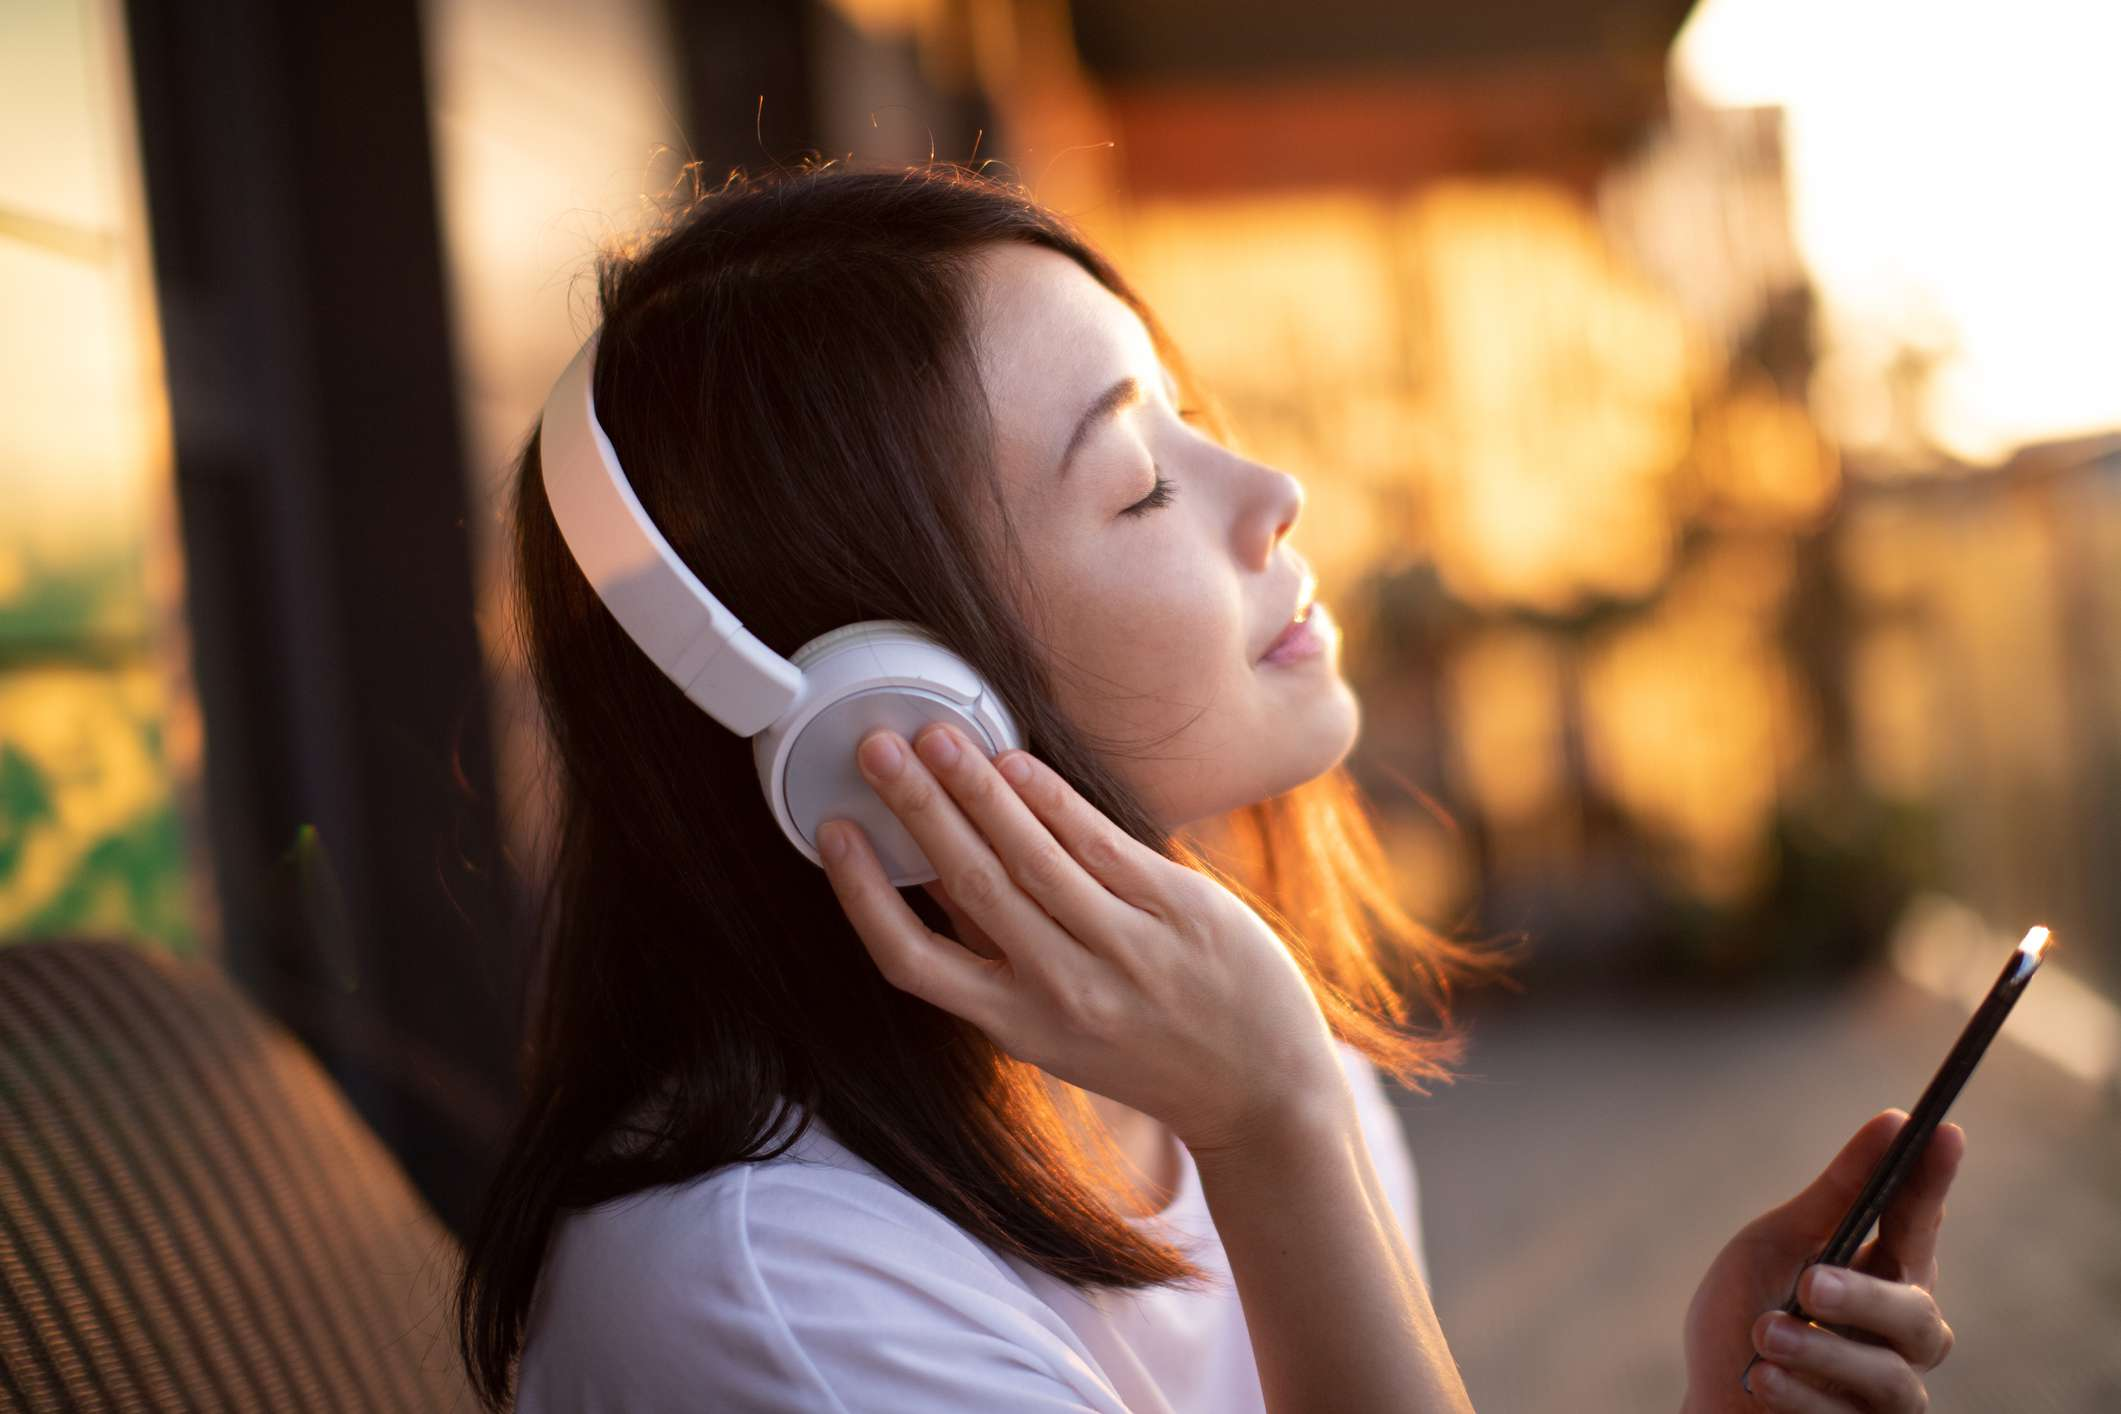 Close up of a young person listening through headphones, holding a smartphone.